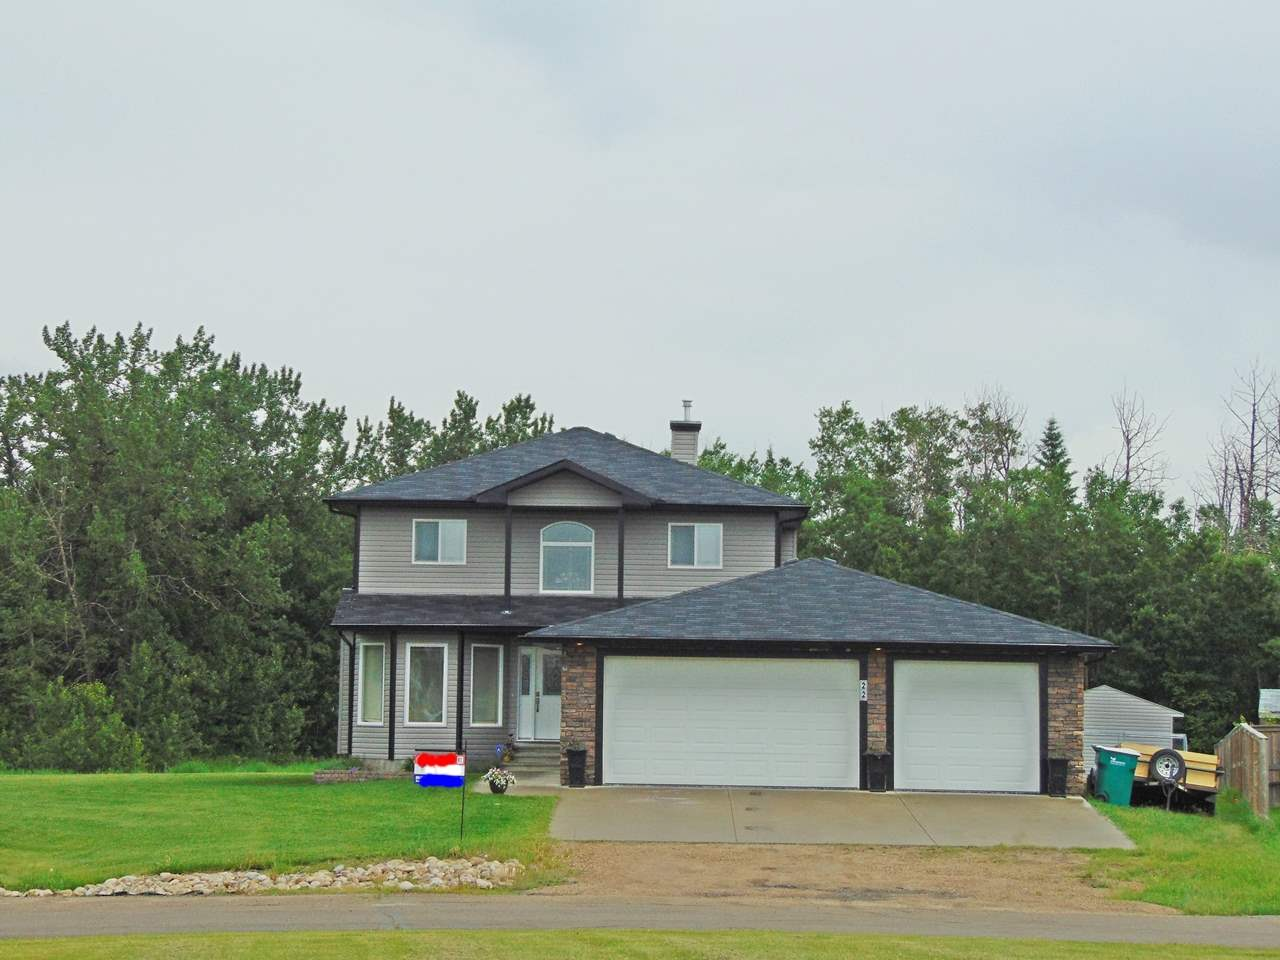 Photo 30: 22 Landing Trails Drive: Gibbons House for sale : MLS(r) # E4051279